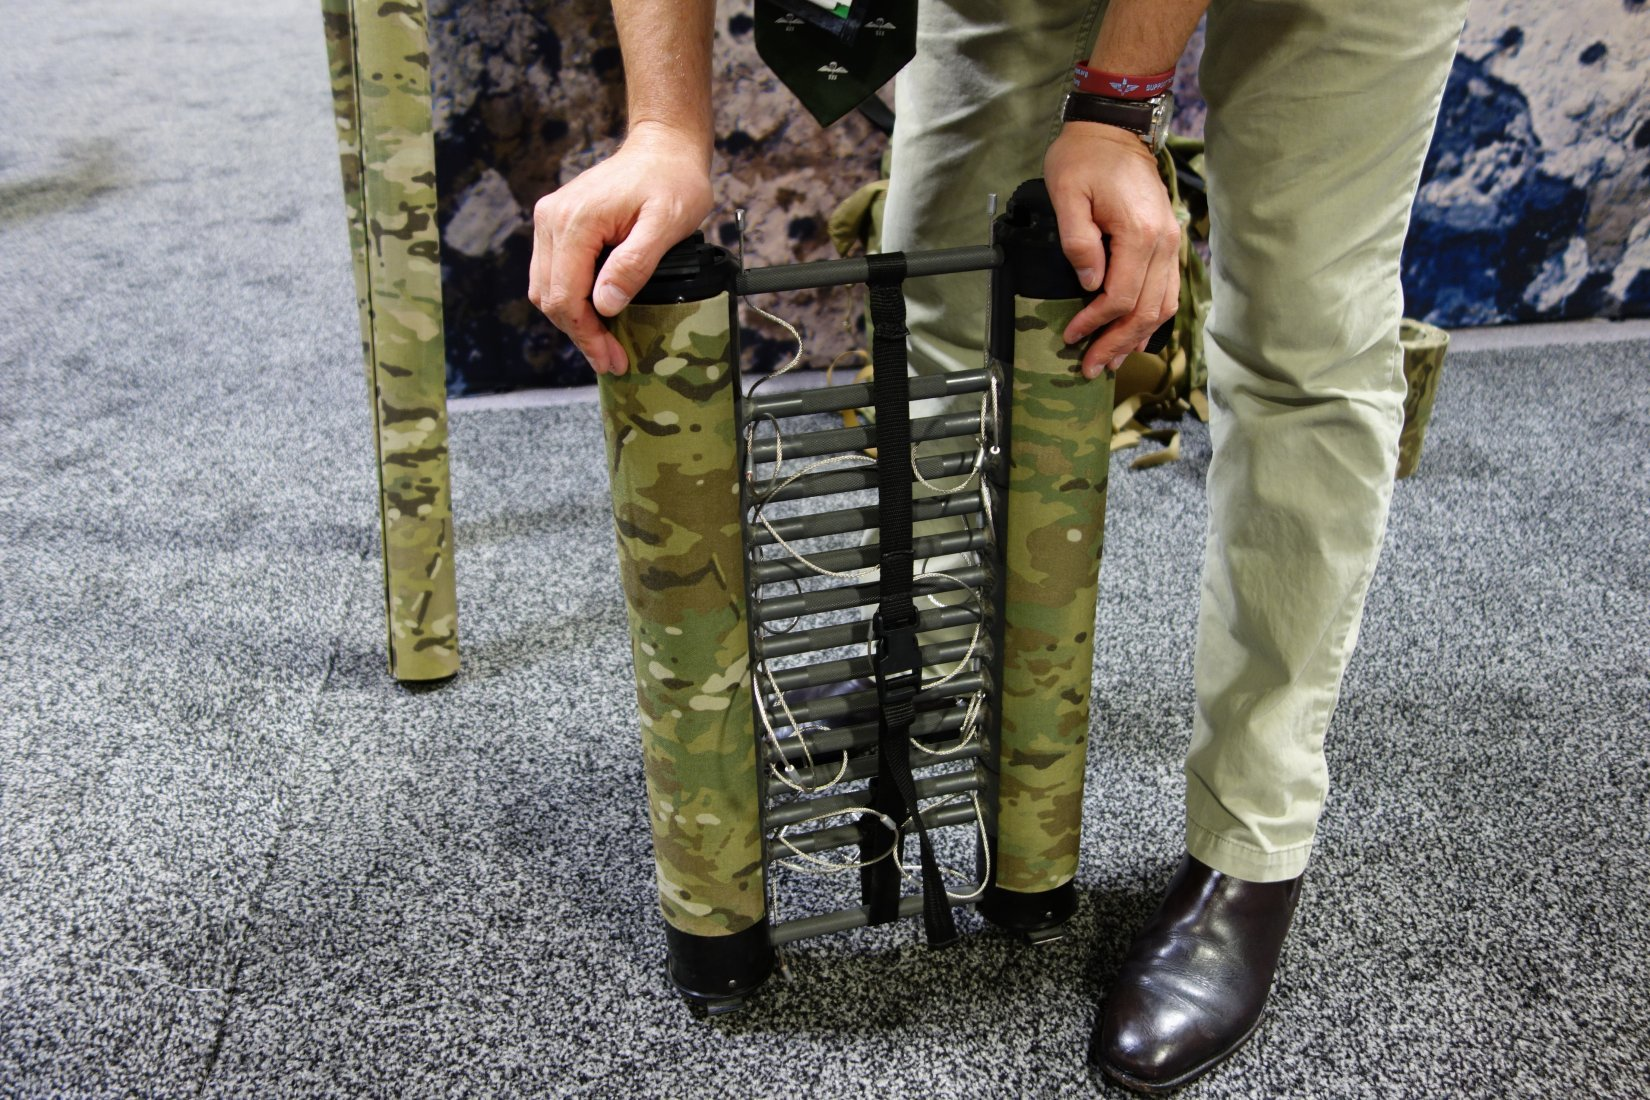 Rolatube Technology Extending Technology Lightweight Tubular Tactical Antenna and Lightweight Tubular Tactical Ladder Combat Ladder Will Pike SOFIC 2013 David Crane DefenseReview.com DR 10 Rolatube Technology Extendable/Collapsible Lightweight Tubular Tactical Ladder and Tactical Antenna Mast for Military Special Operations Forces (SOF) Combat Missions and Maritime Ops (Video!)